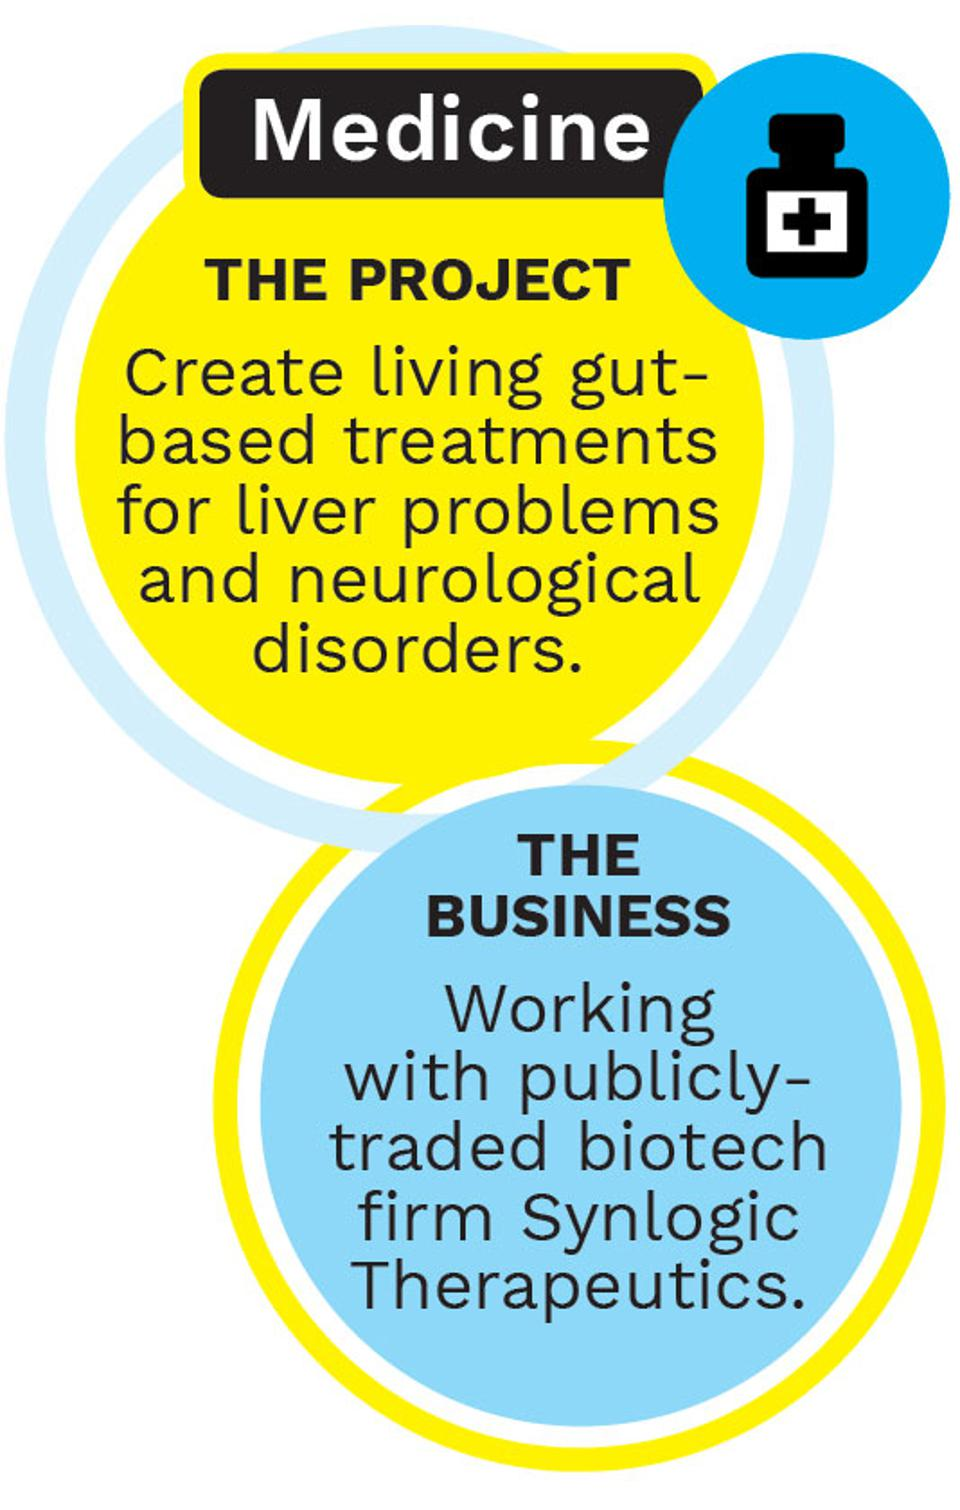 The Life Factory: Synthetic Organisms From This $1 4 Billion Startup